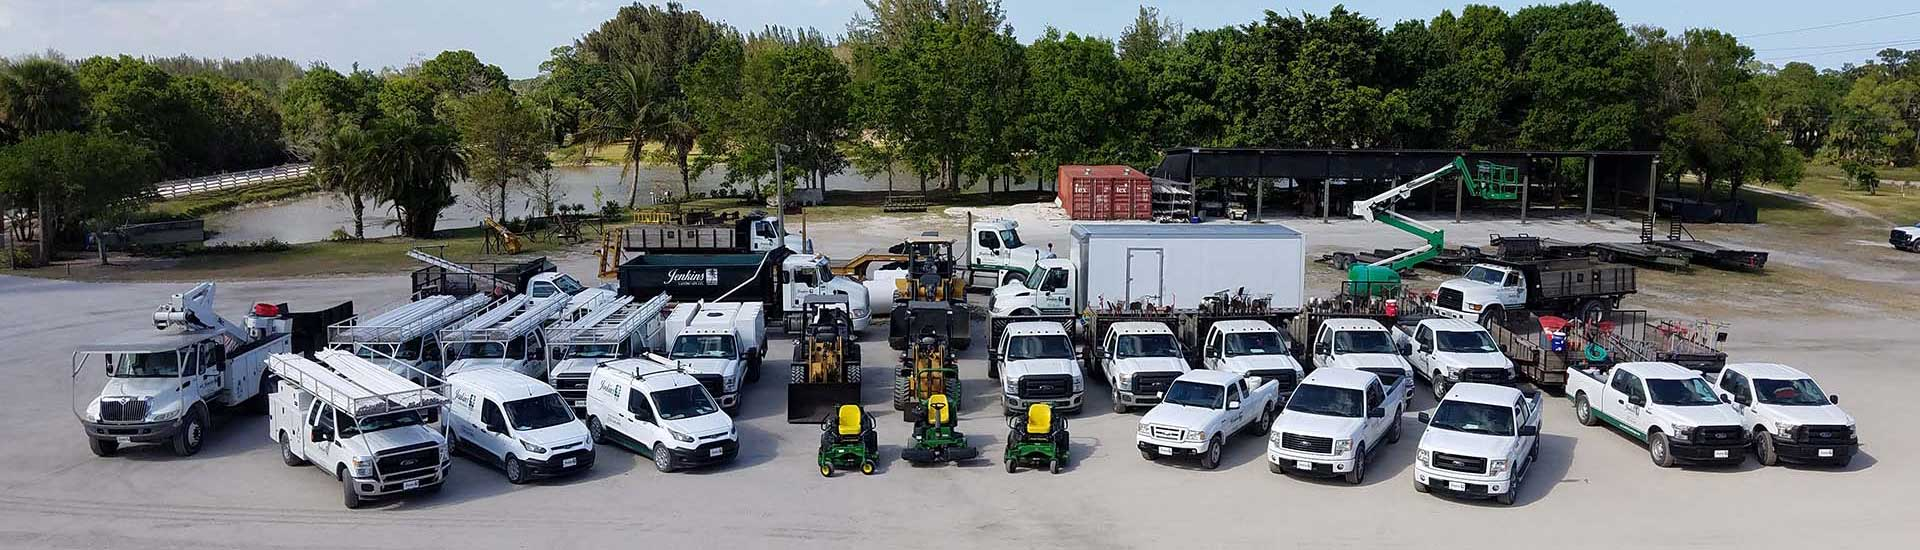 Jenkins company truck fleet photo